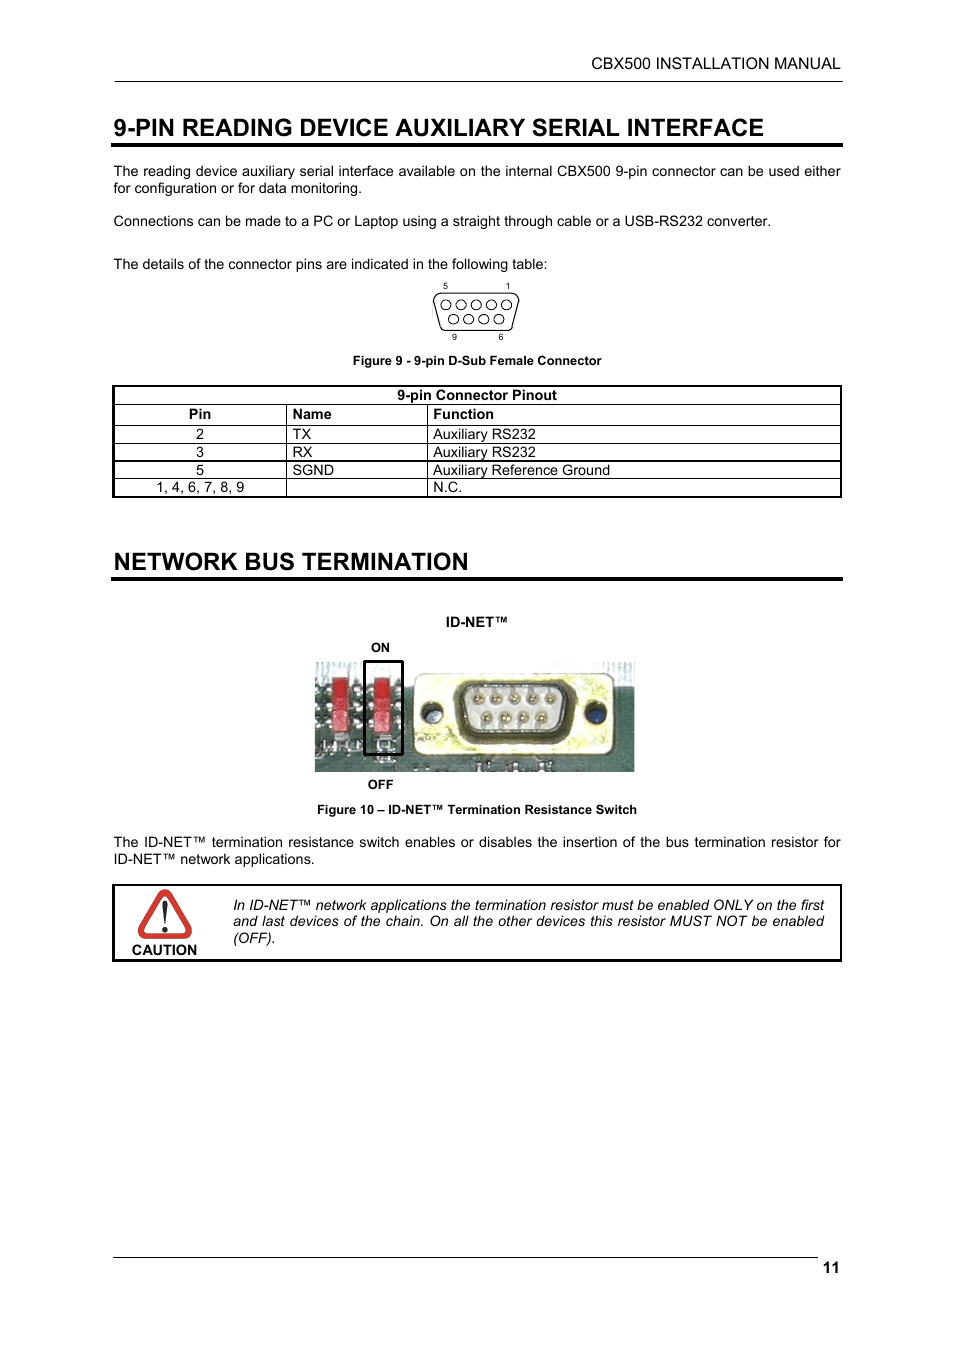 medium resolution of pin reading device auxiliary serial interface network bus termination datalogic scanning cbx500 user manual page 11 15